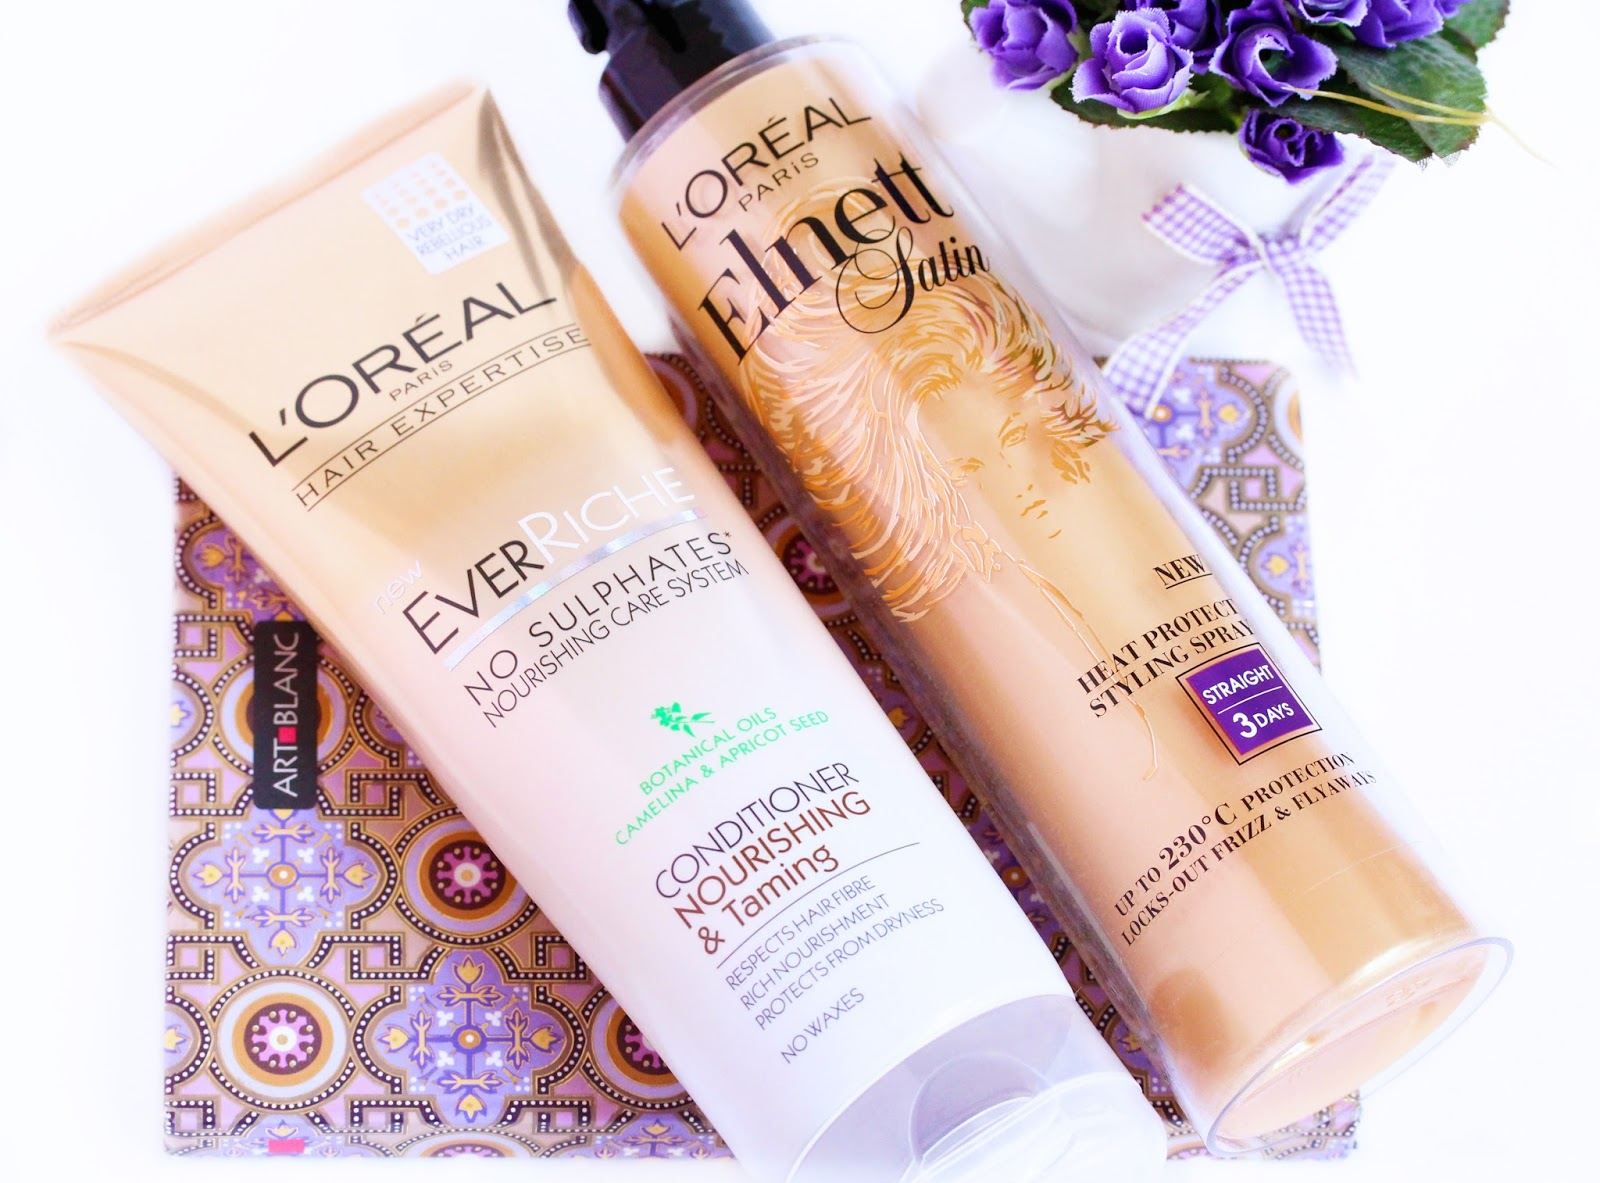 L'oreal haircare products, L'Oreal Elnett Heat Spray, L'Oreal Ever Riche Conditioner